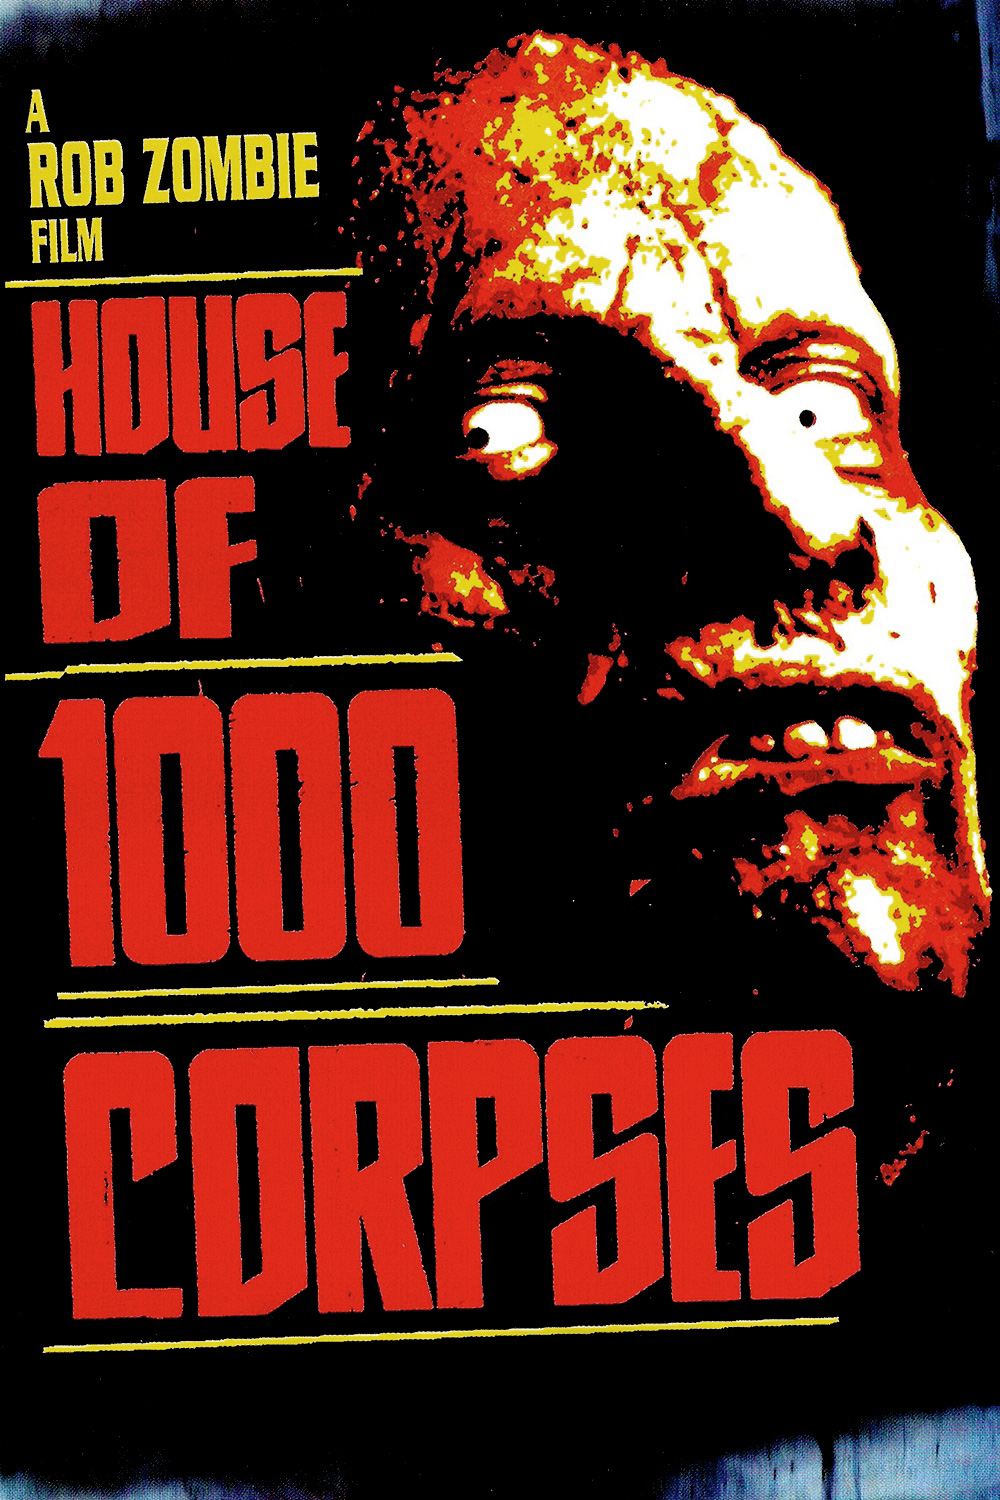 house_of_1000_corpses_p.jpg